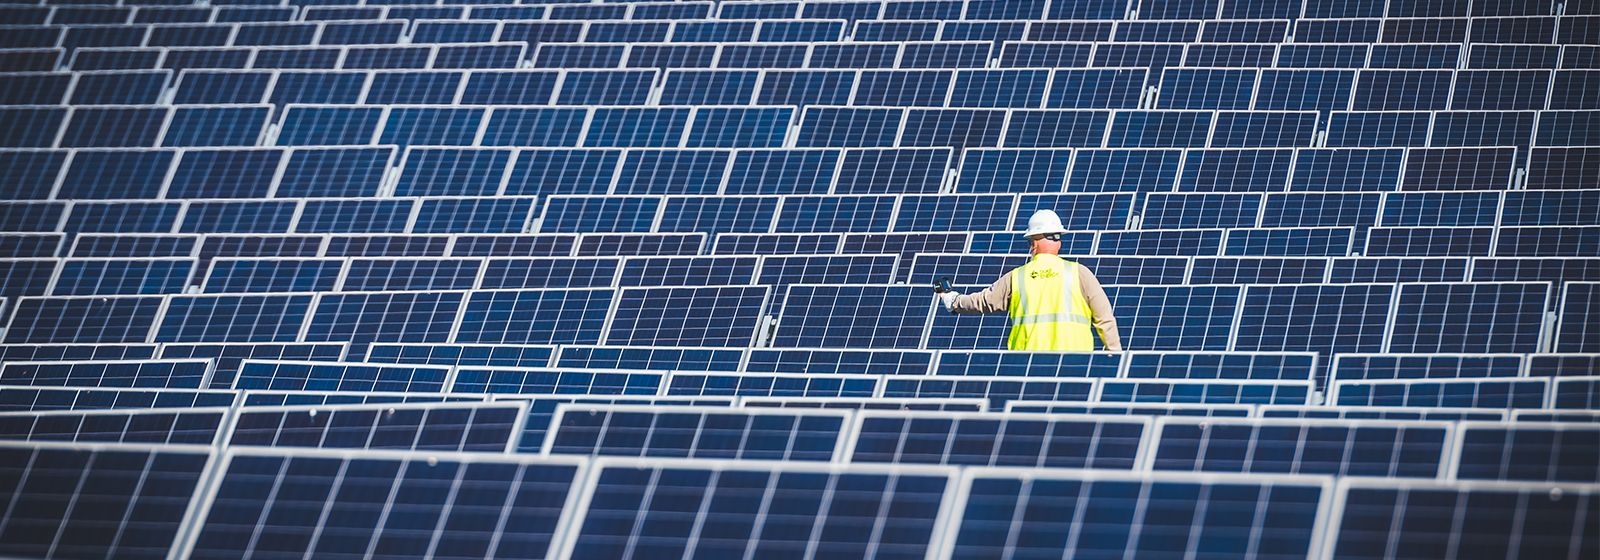 Duke Energy cuts carbon emissions, provides support to communities